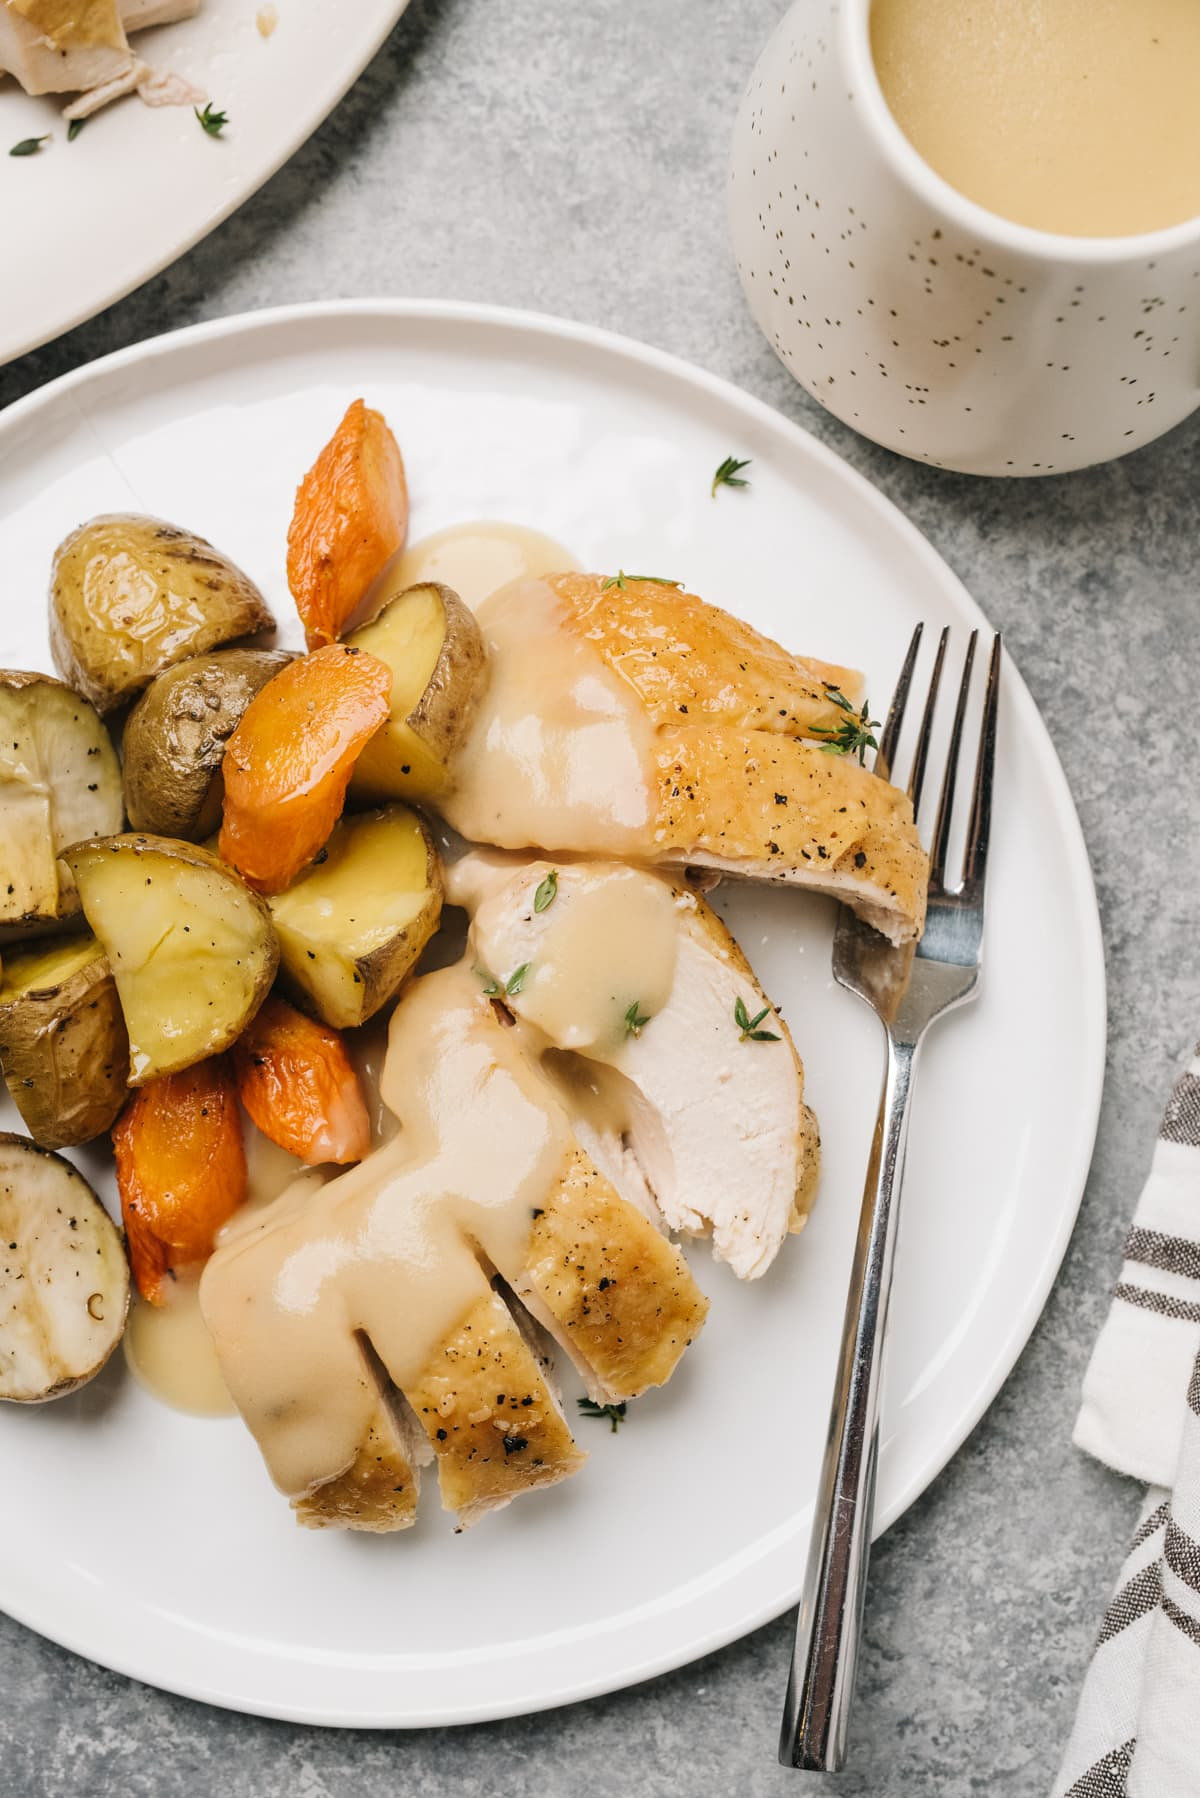 Sliced roasted chicken breast on a plate drizzled with gravy, with roasted potatoes and carrots and a small pitcher of gravy to the side.